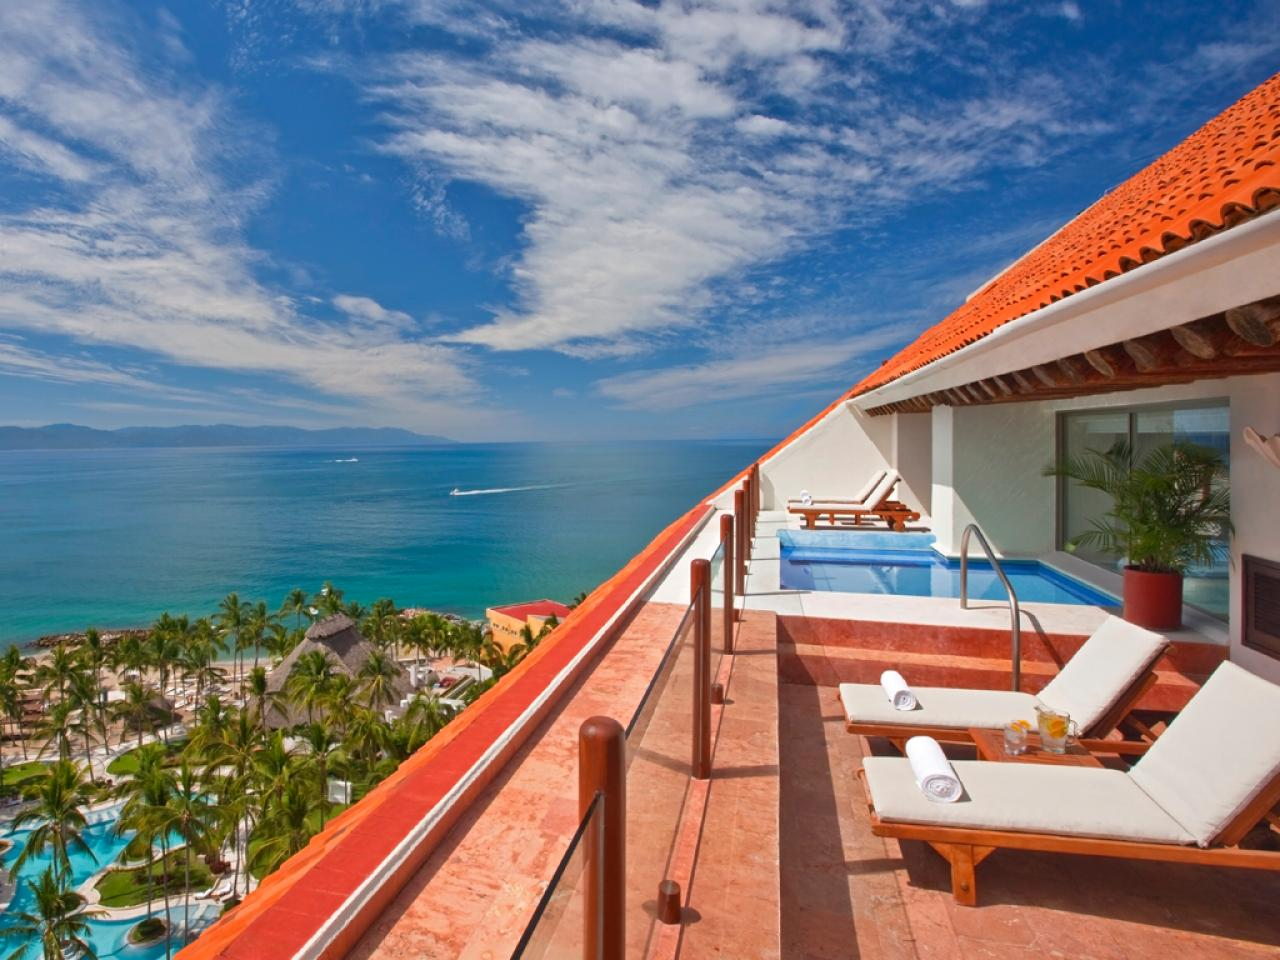 Photo by westin resort spa puerto vallarta